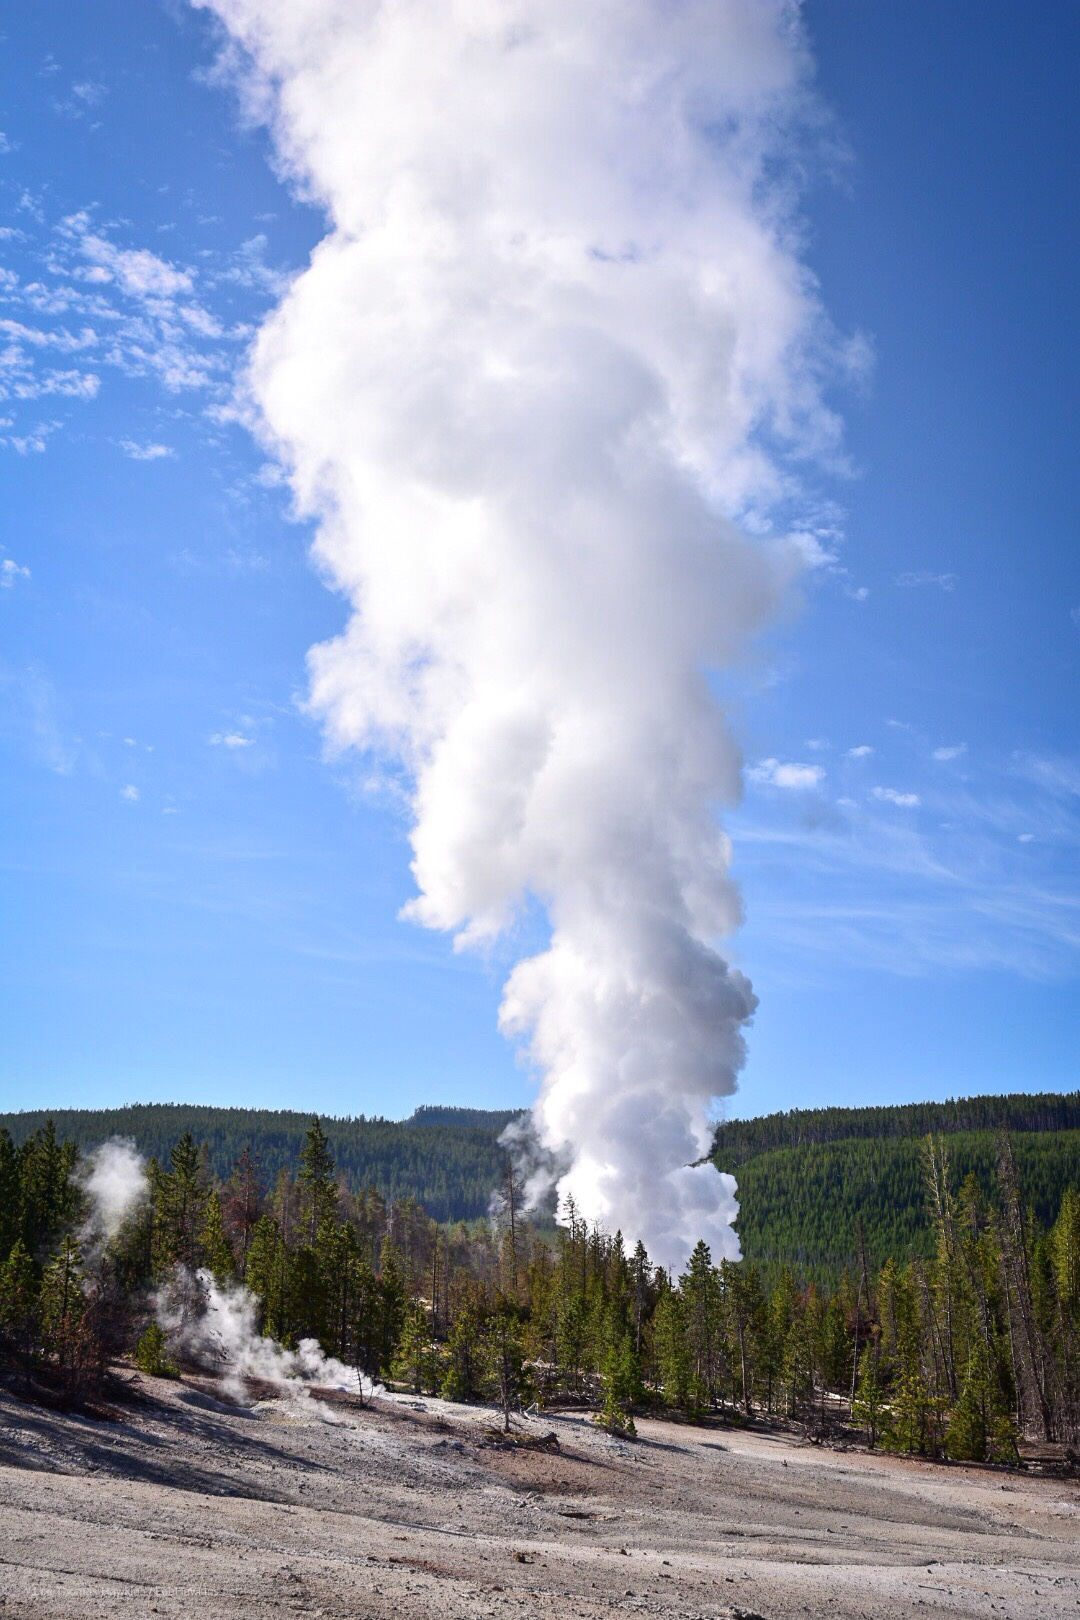 A huge plume of steam rises from a geyser.